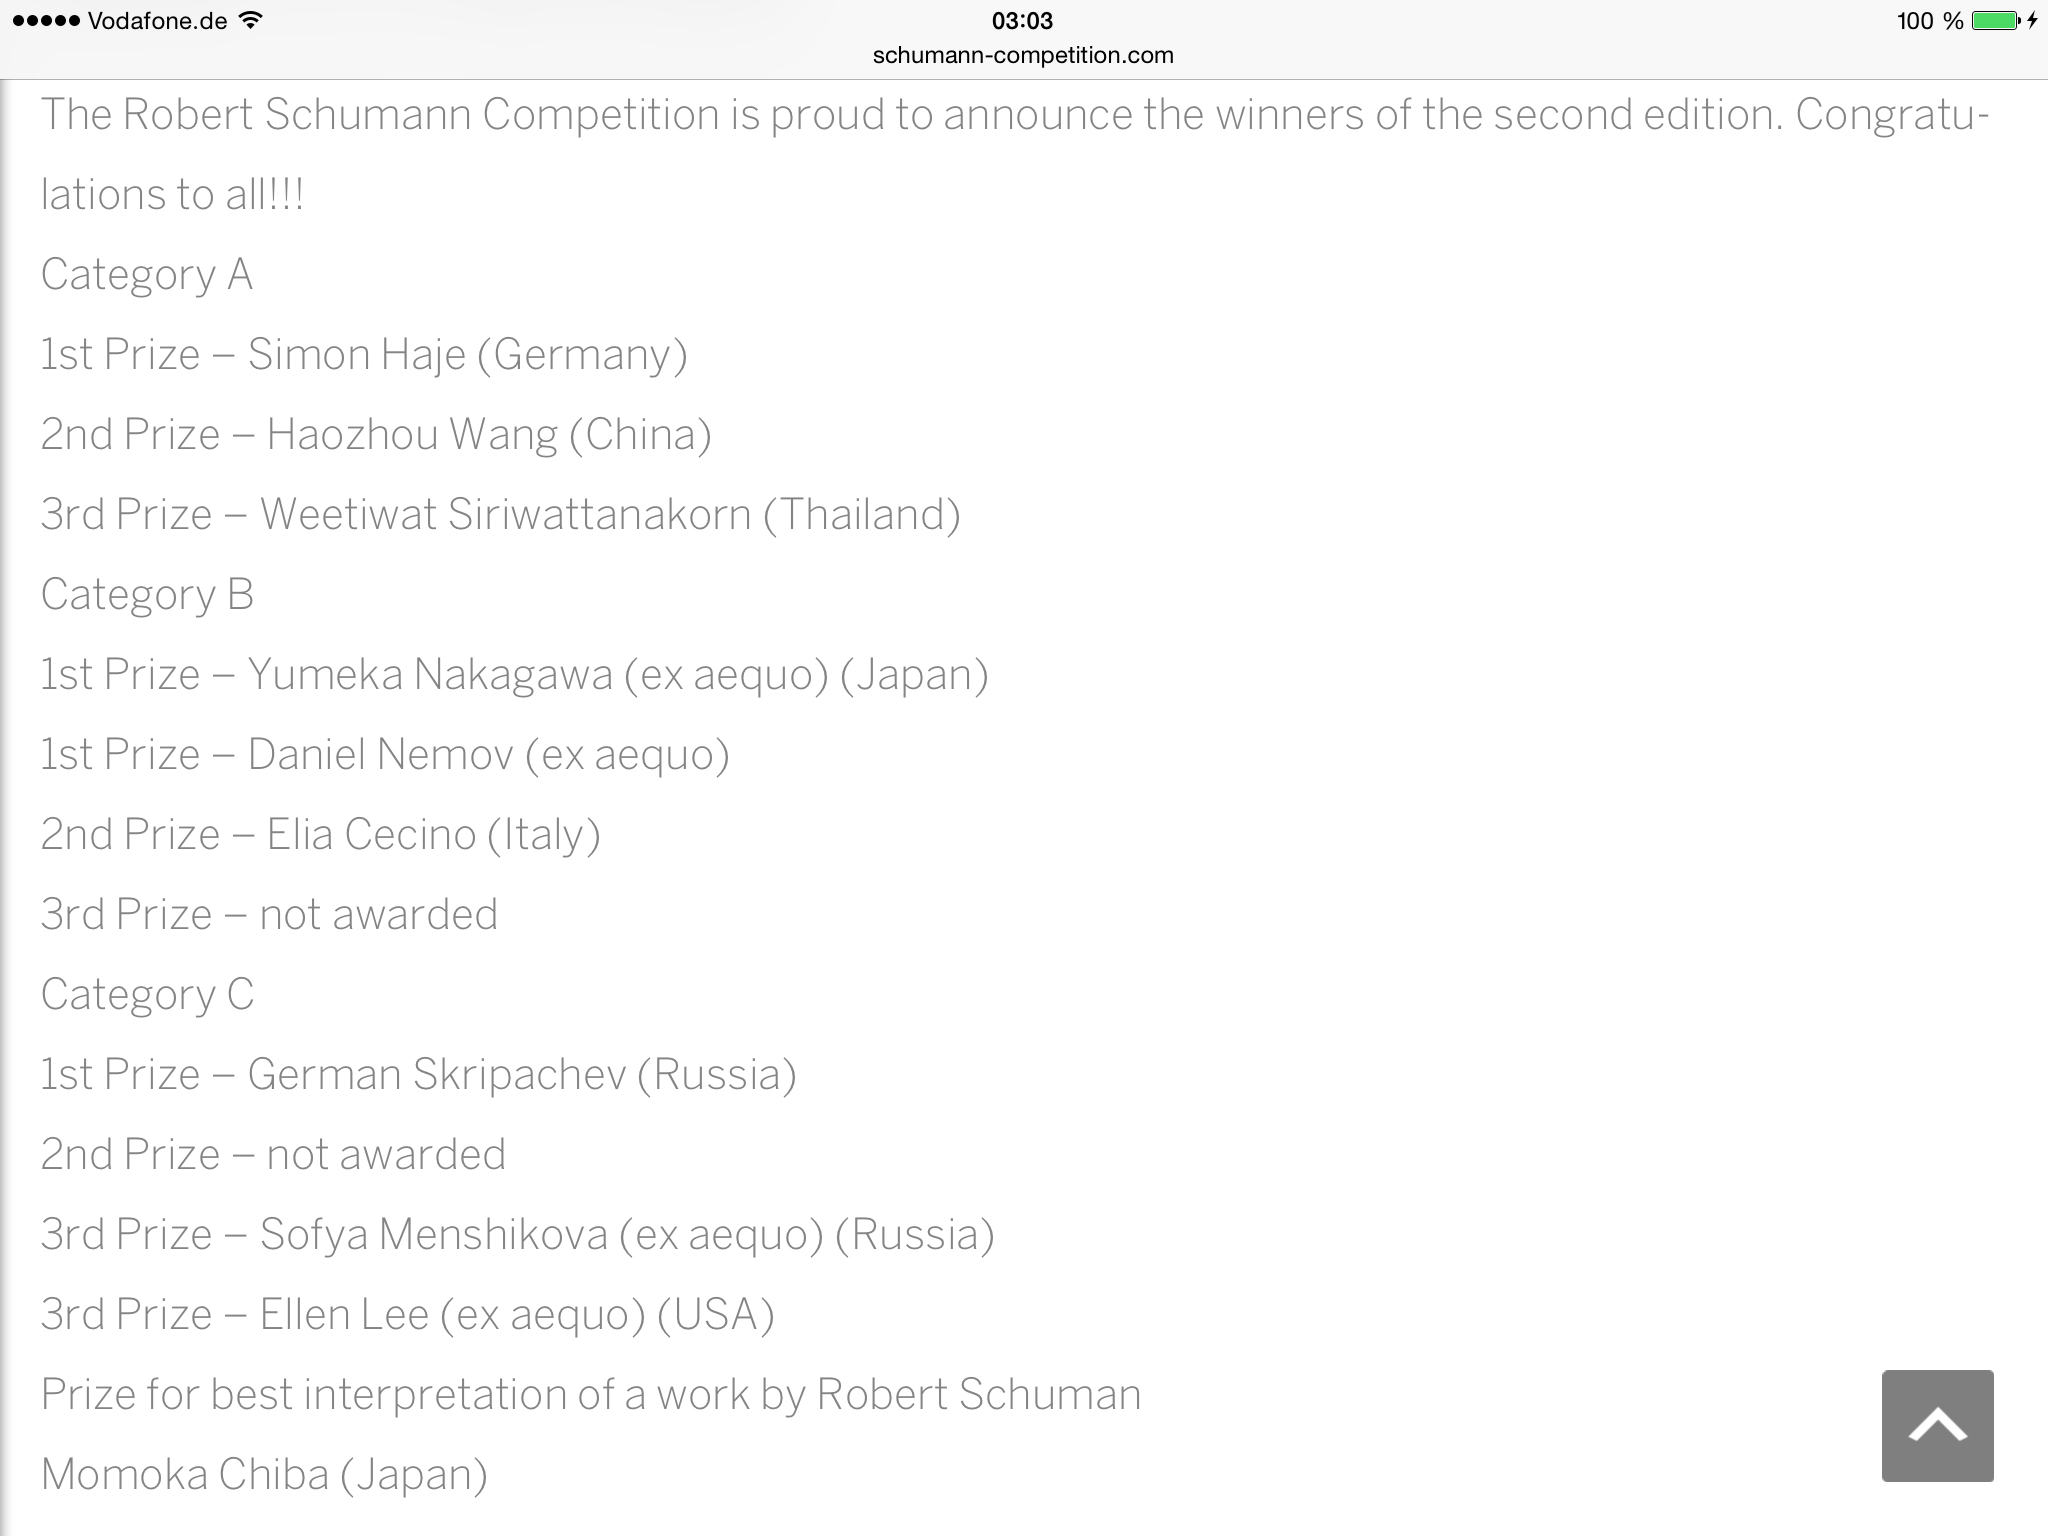 PRIZE WINNERS OF THE 2nd ROBERT SCHUMANN COMPETITION